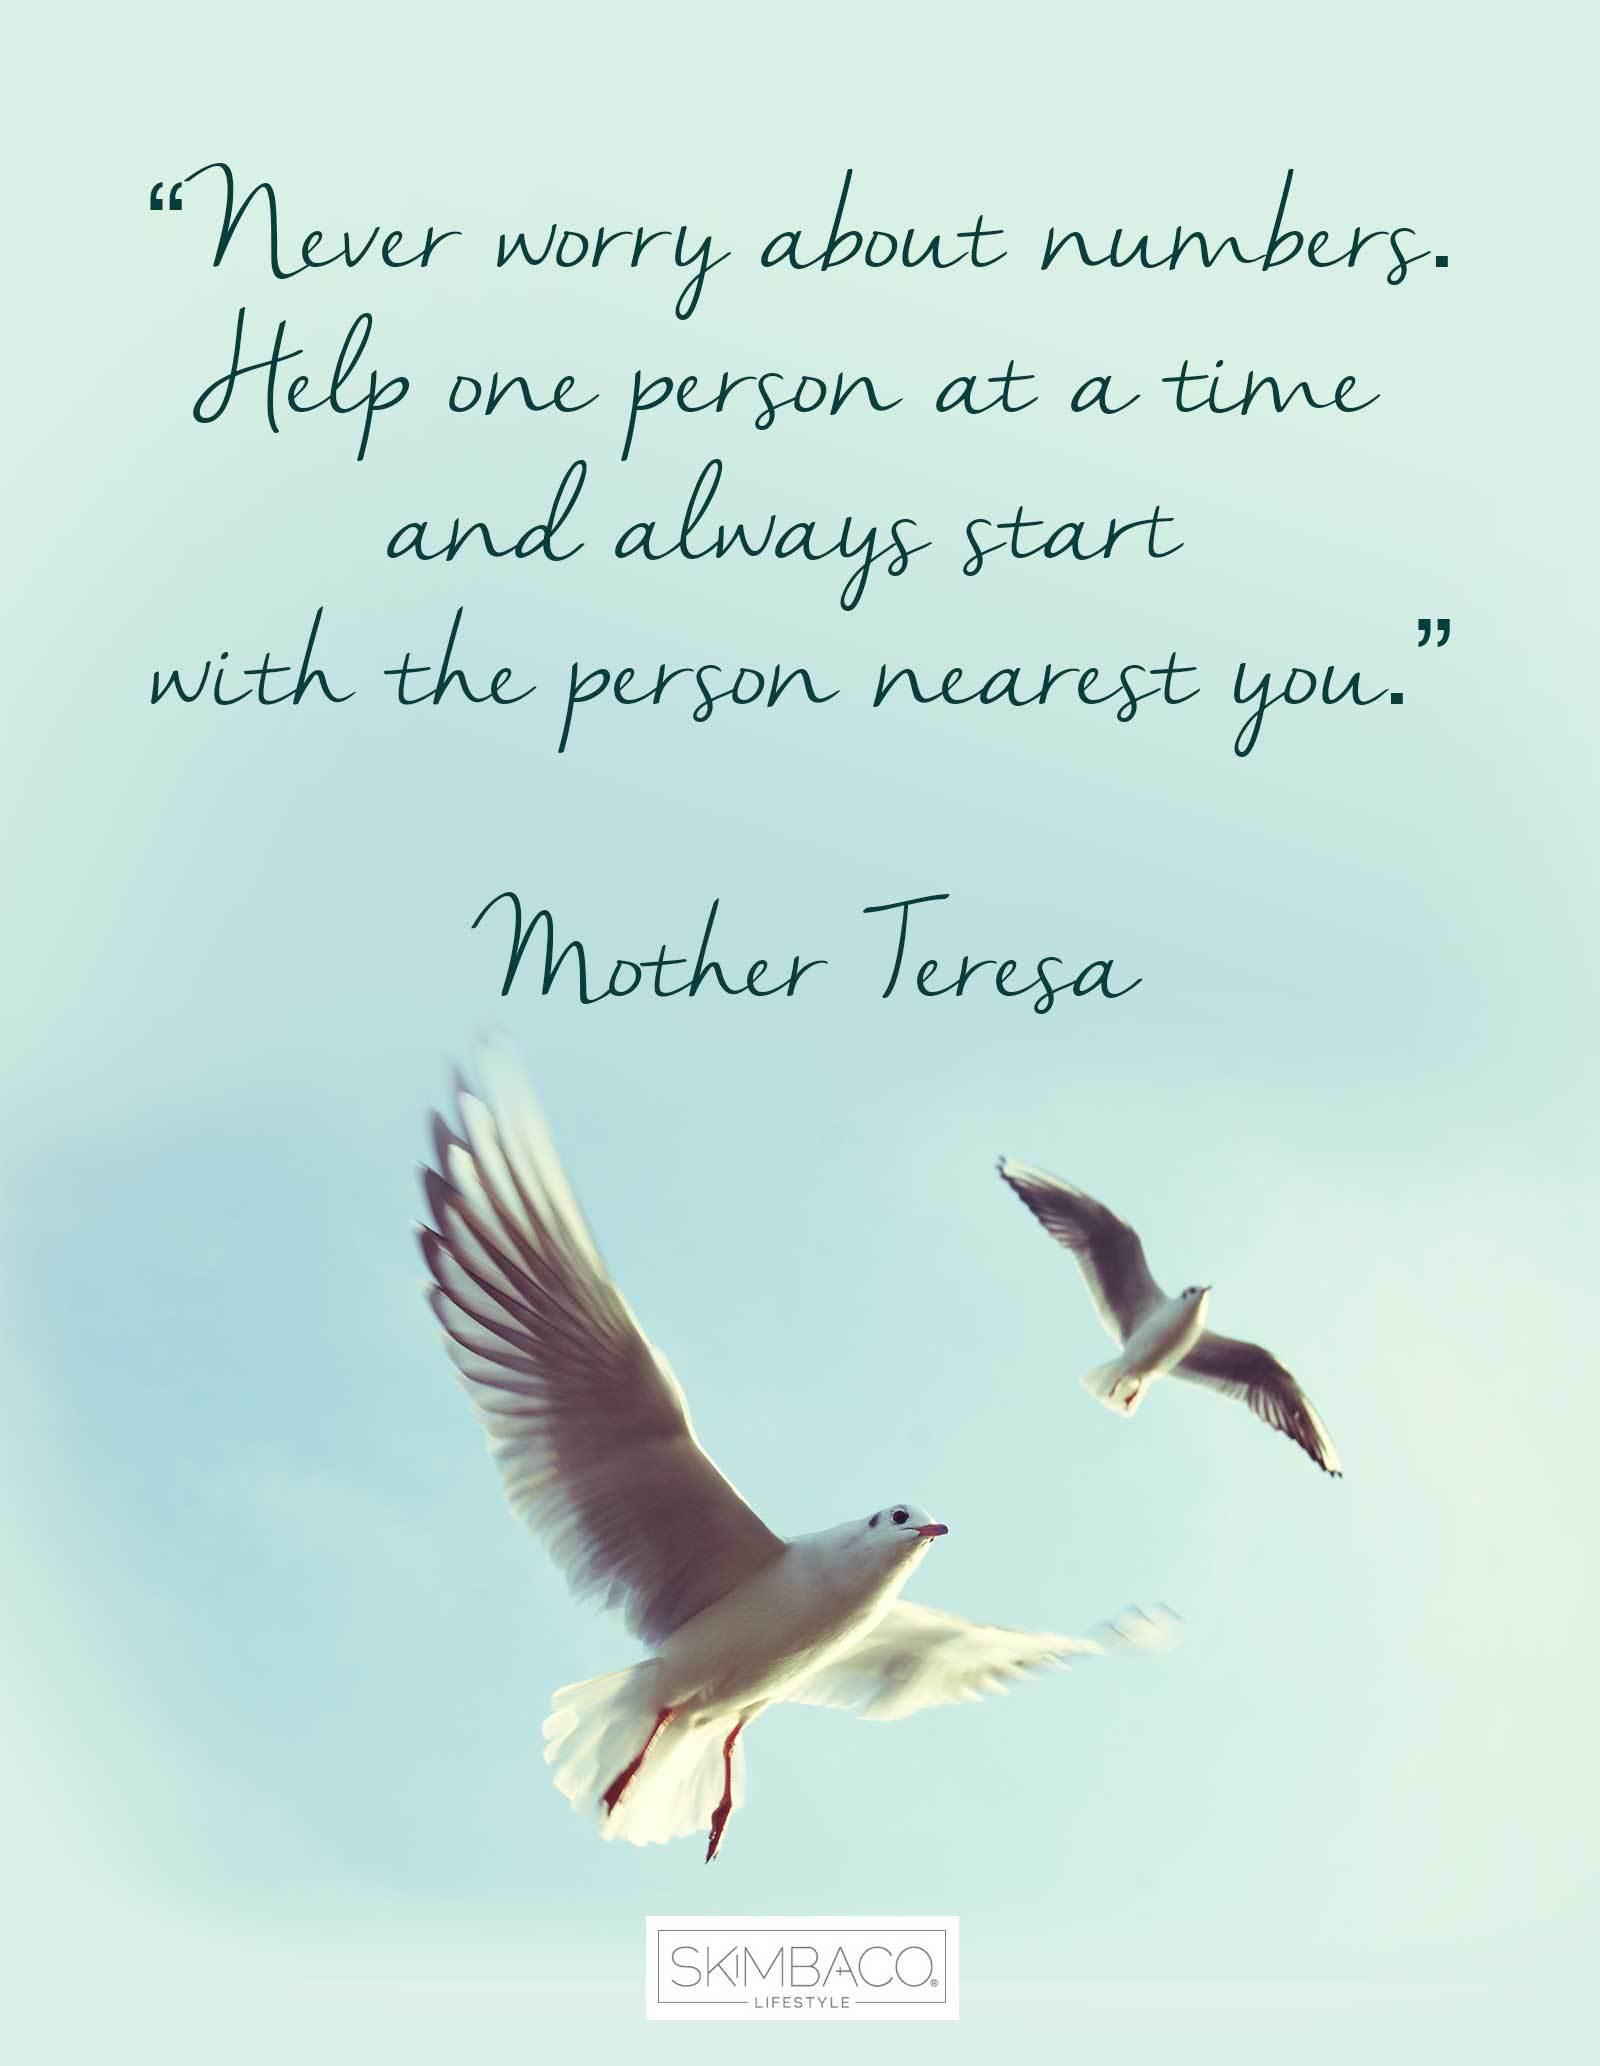 """Never worry about numbers. Help one person at a time and always start with the person nearest you.""  ― Mother Teresa"